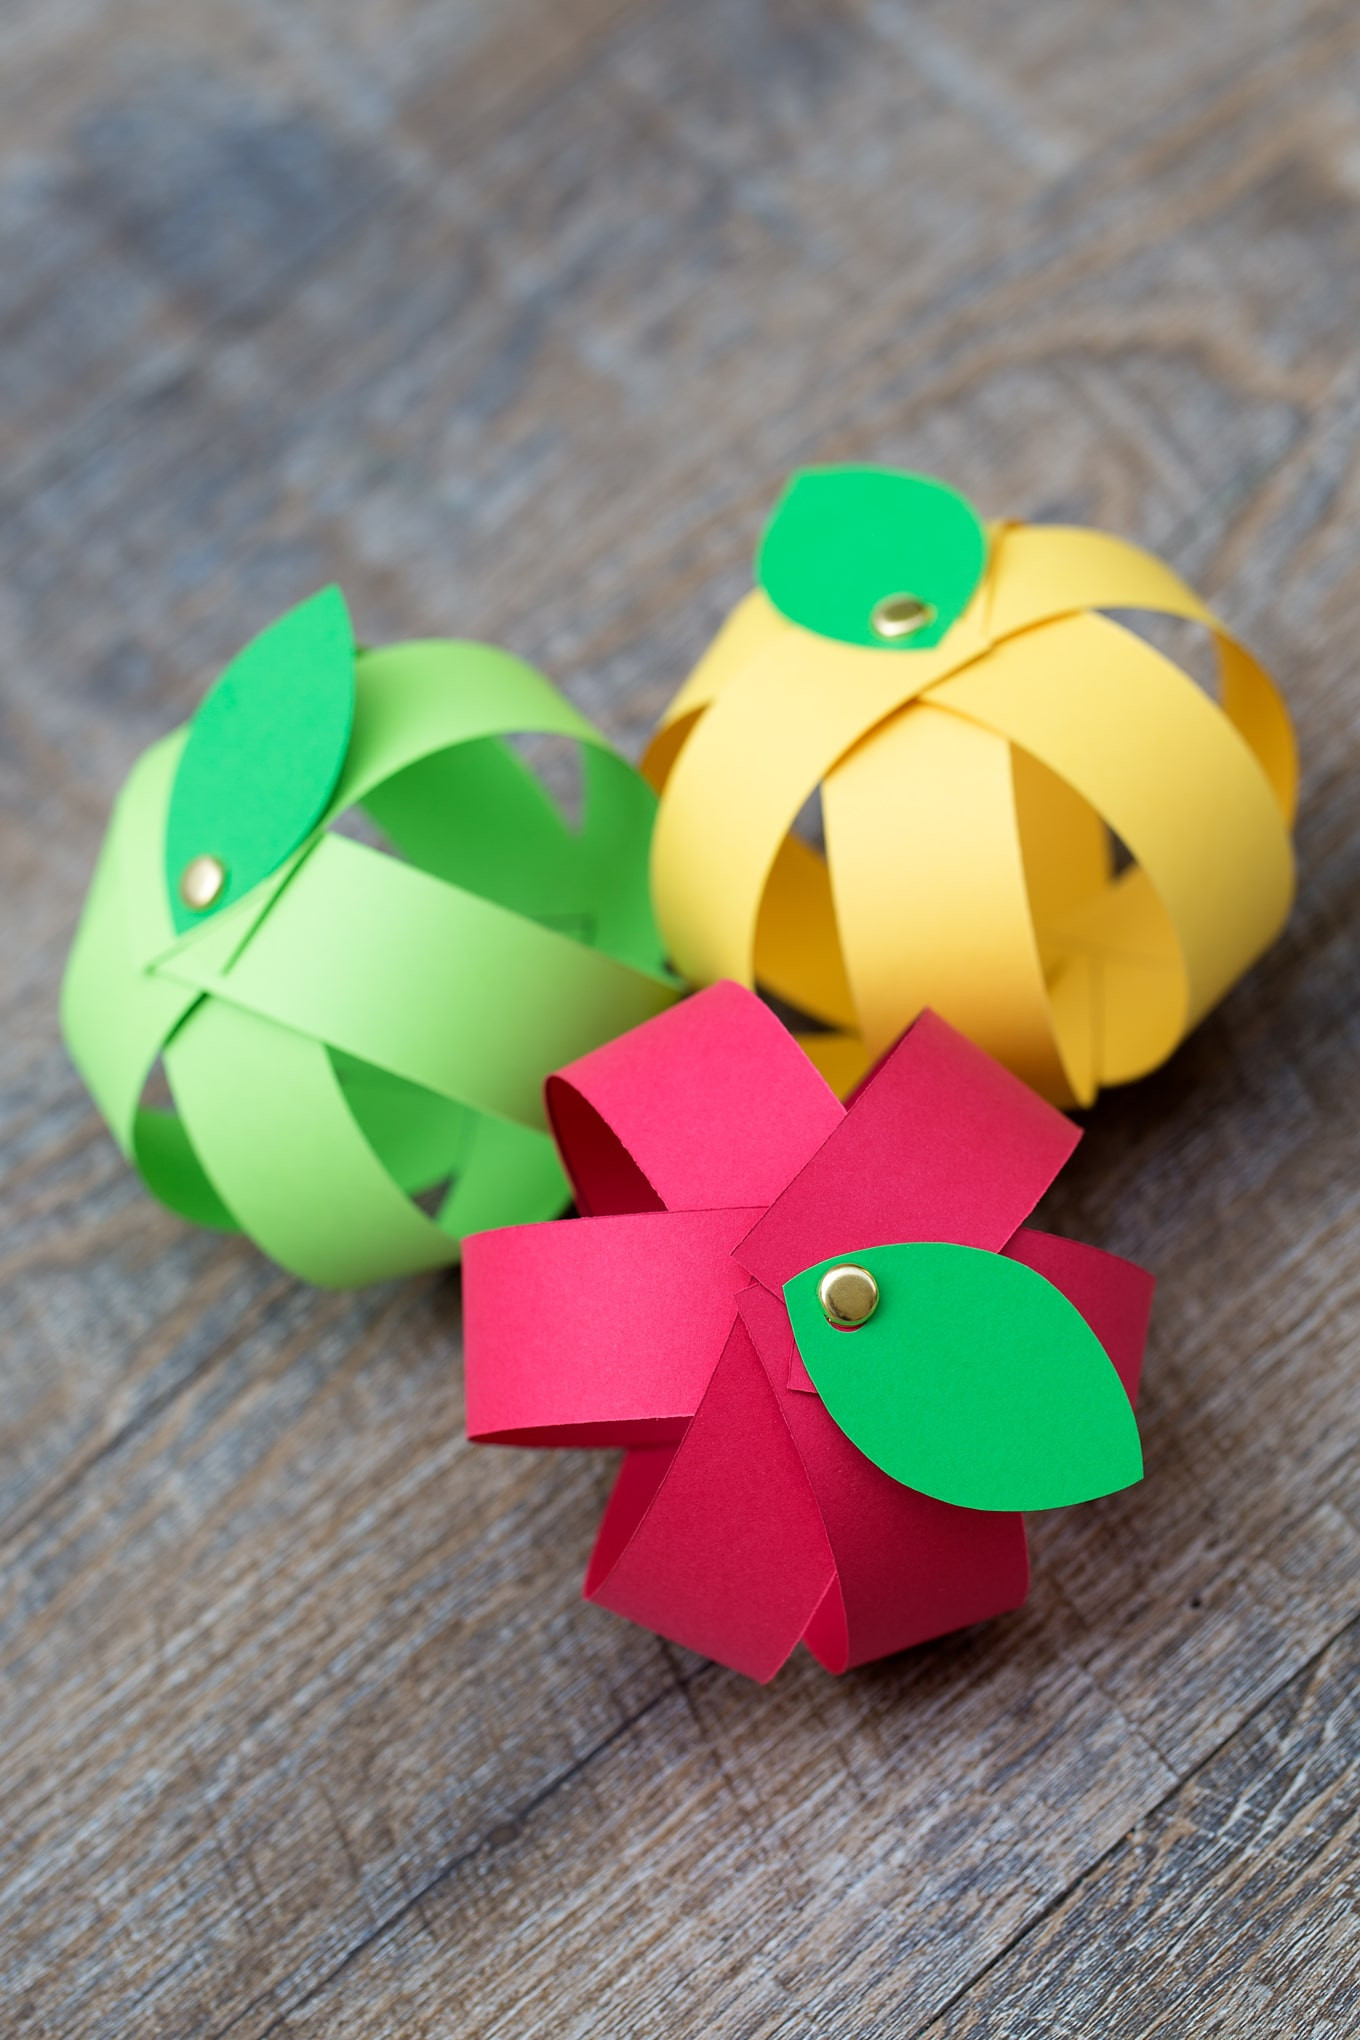 Best ideas about Crafts For Kids . Save or Pin Make Your Own Easy Paper Apple Craft with Free Printable Now.